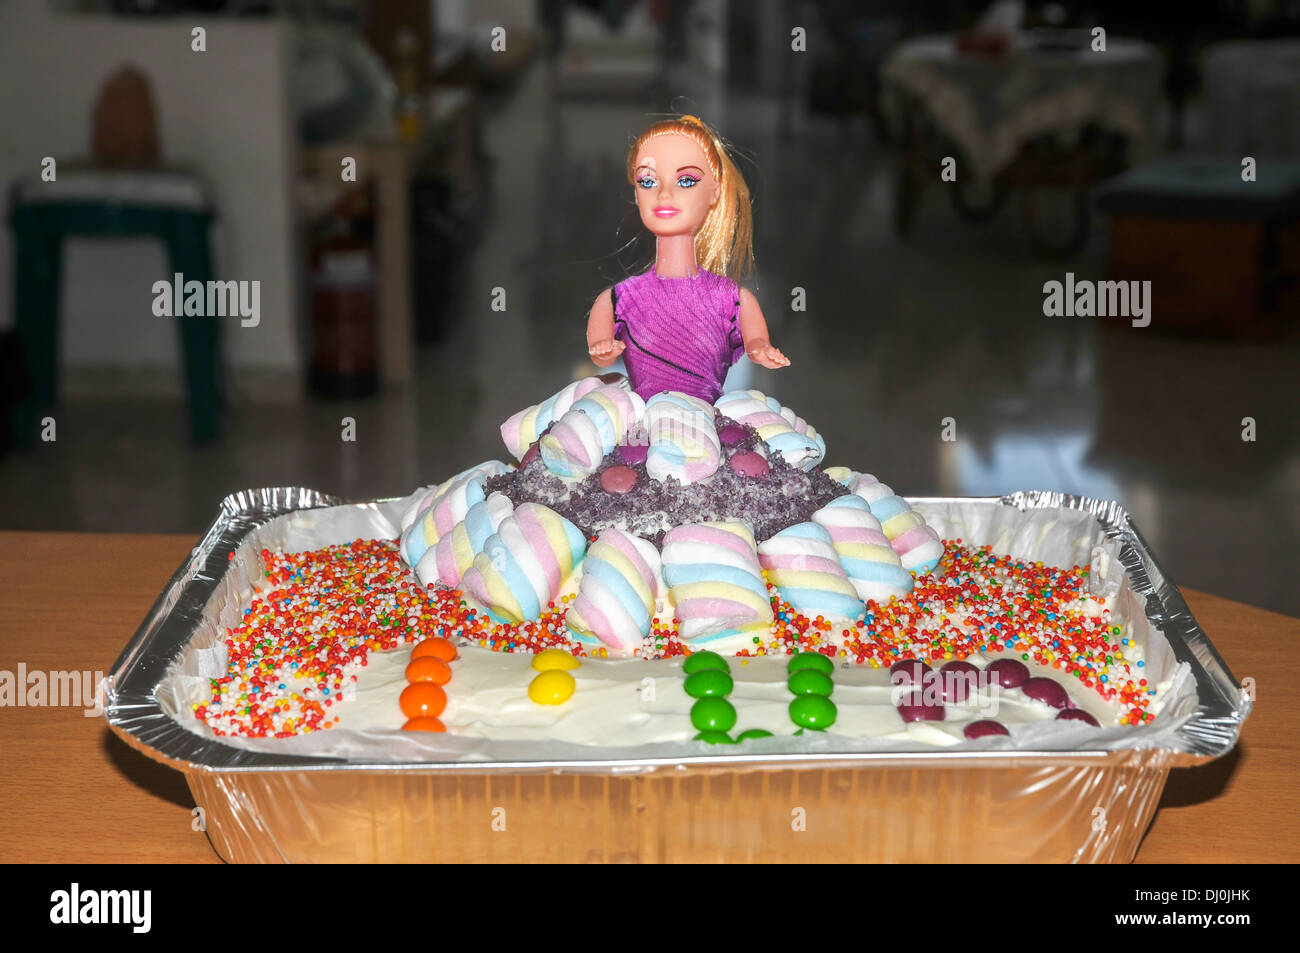 Barbie Doll Birthday Cake Decorated With Smarties And Hundreds And